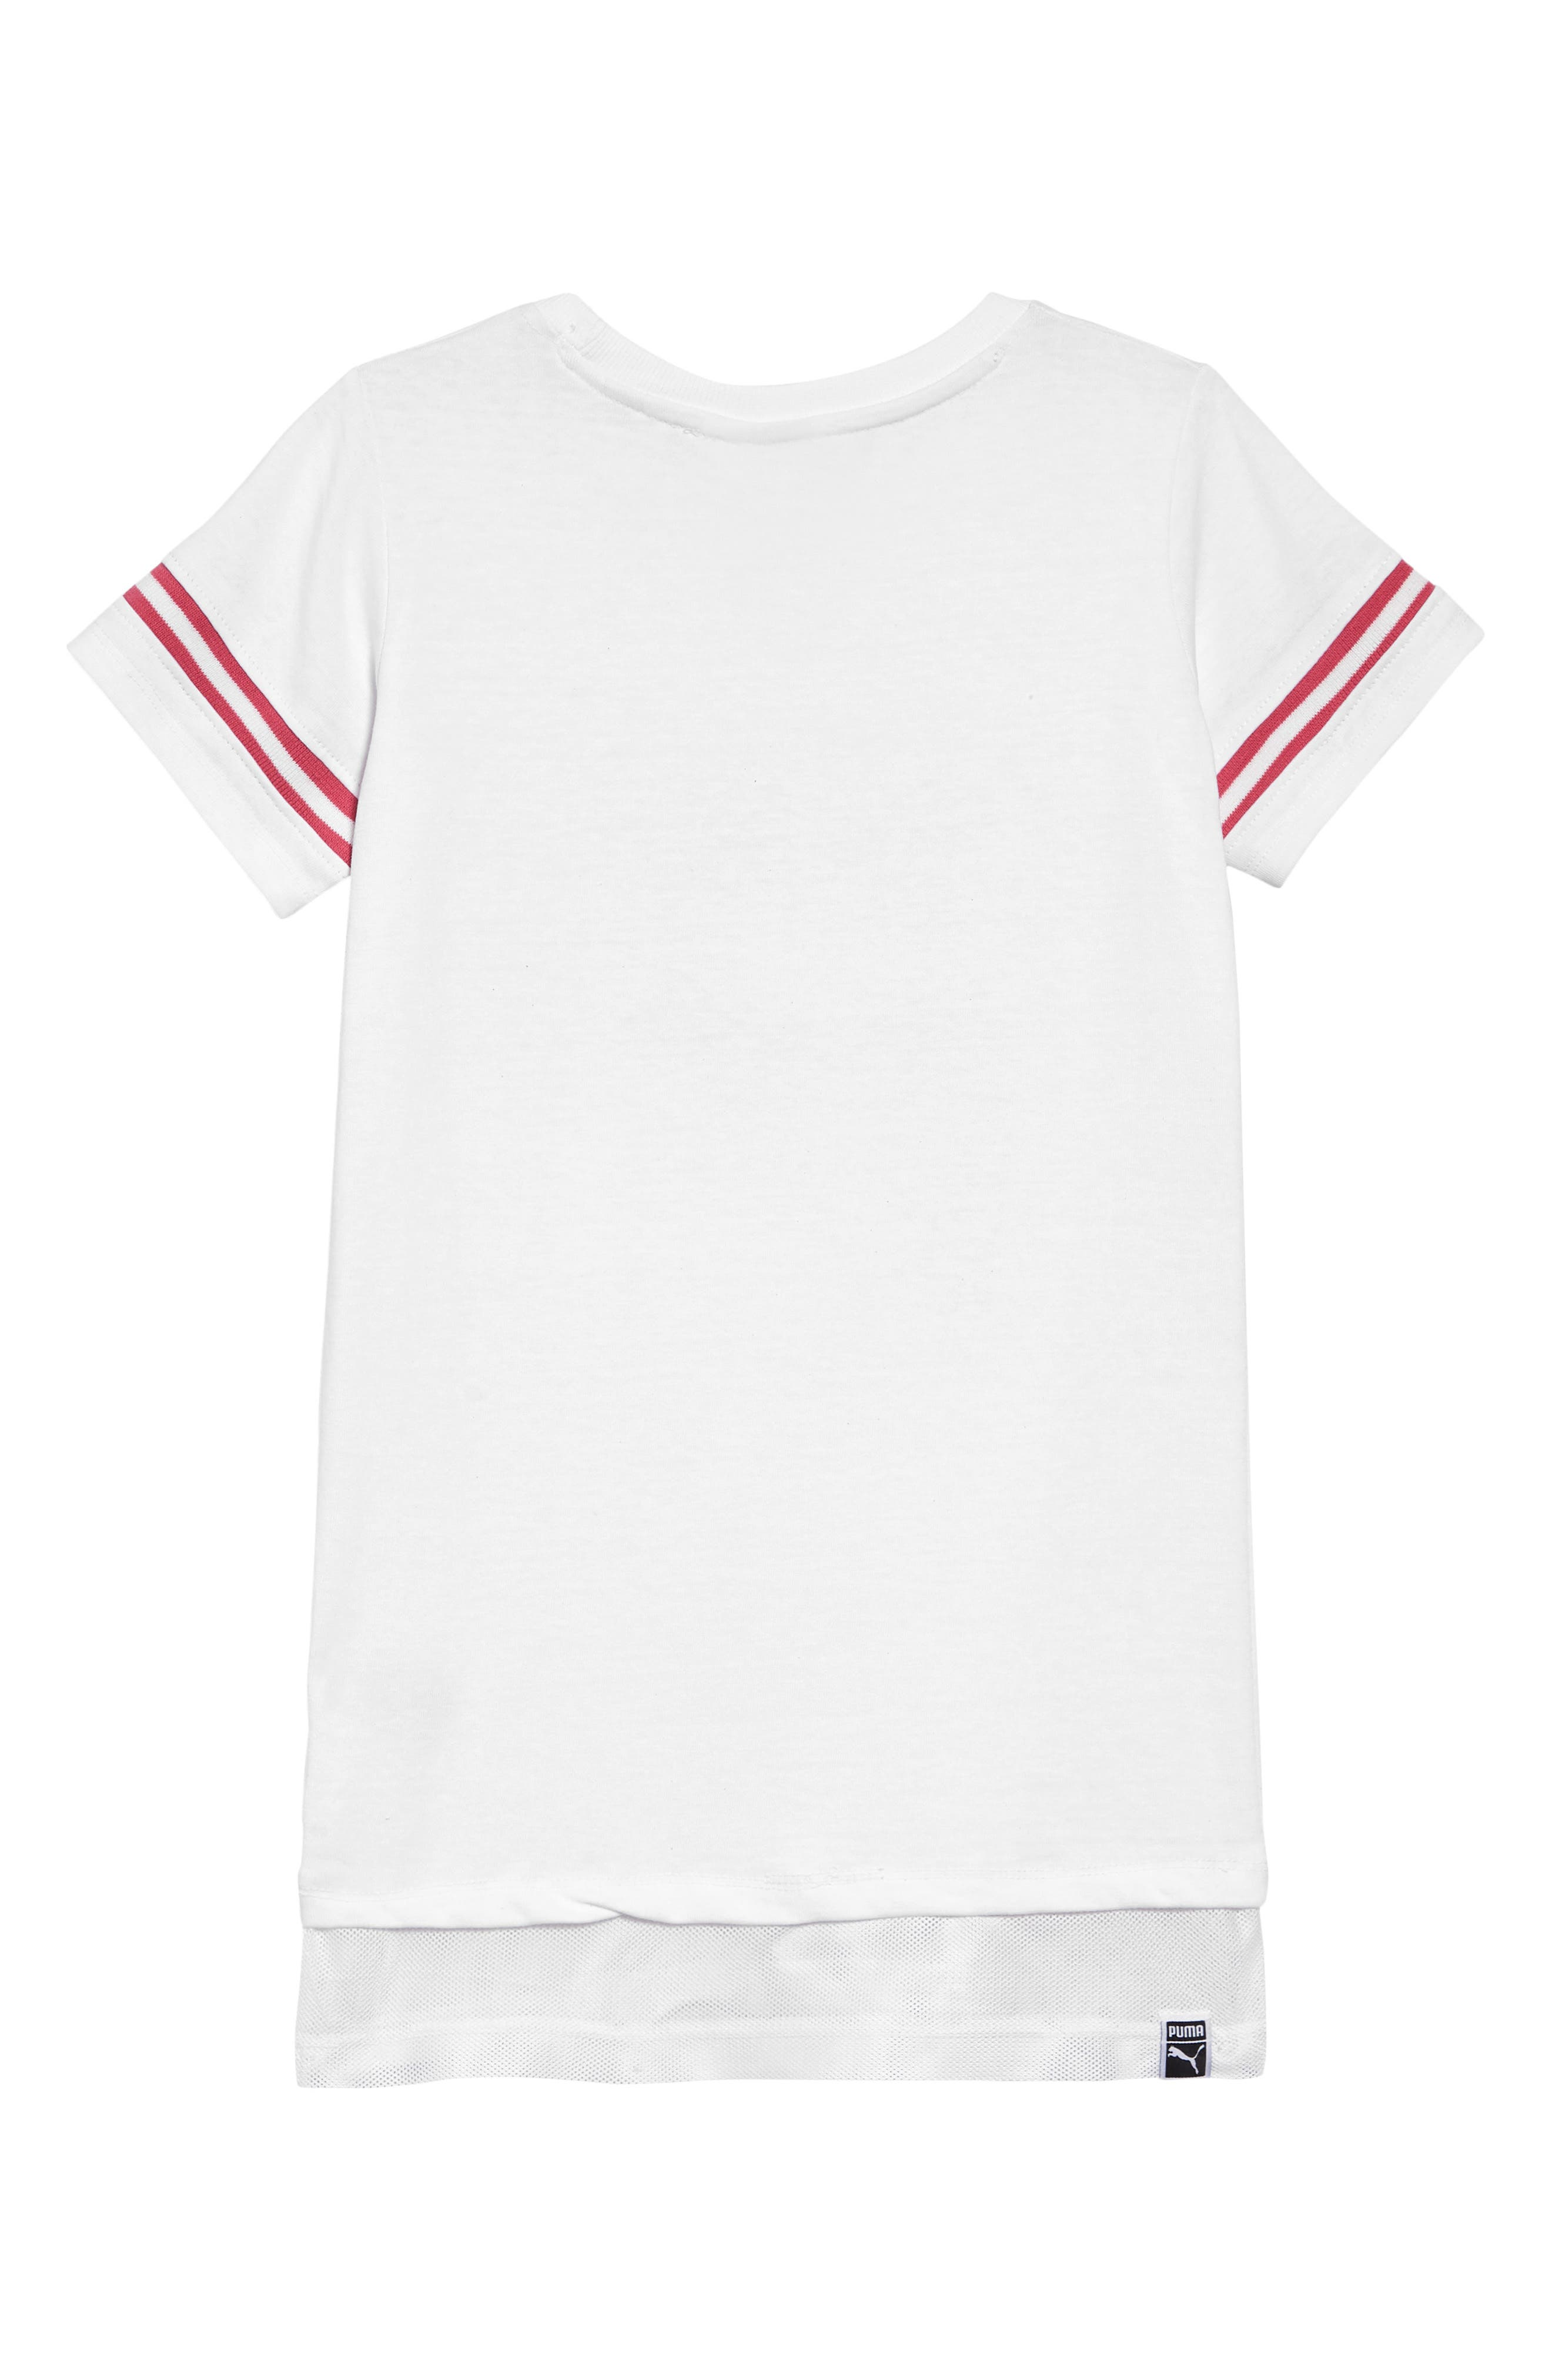 PUMA, Glitter Logo T-Shirt Dress, Alternate thumbnail 2, color, PUMA WHITE